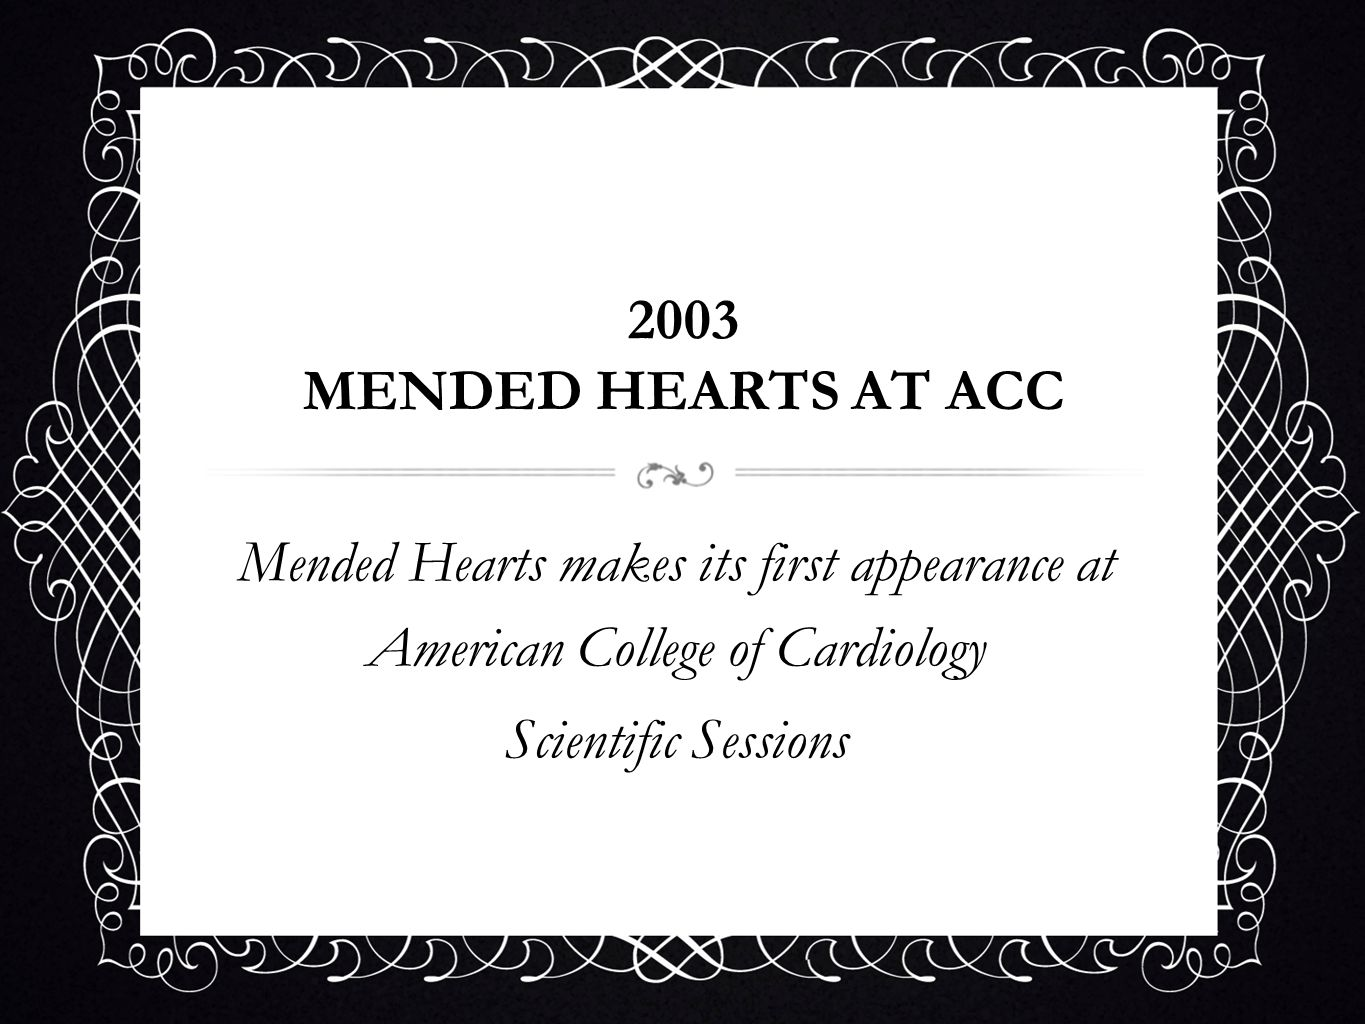 2003 MENDED HEARTS AT ACCMended Hearts makes its first appearance at American College of Cardiology.